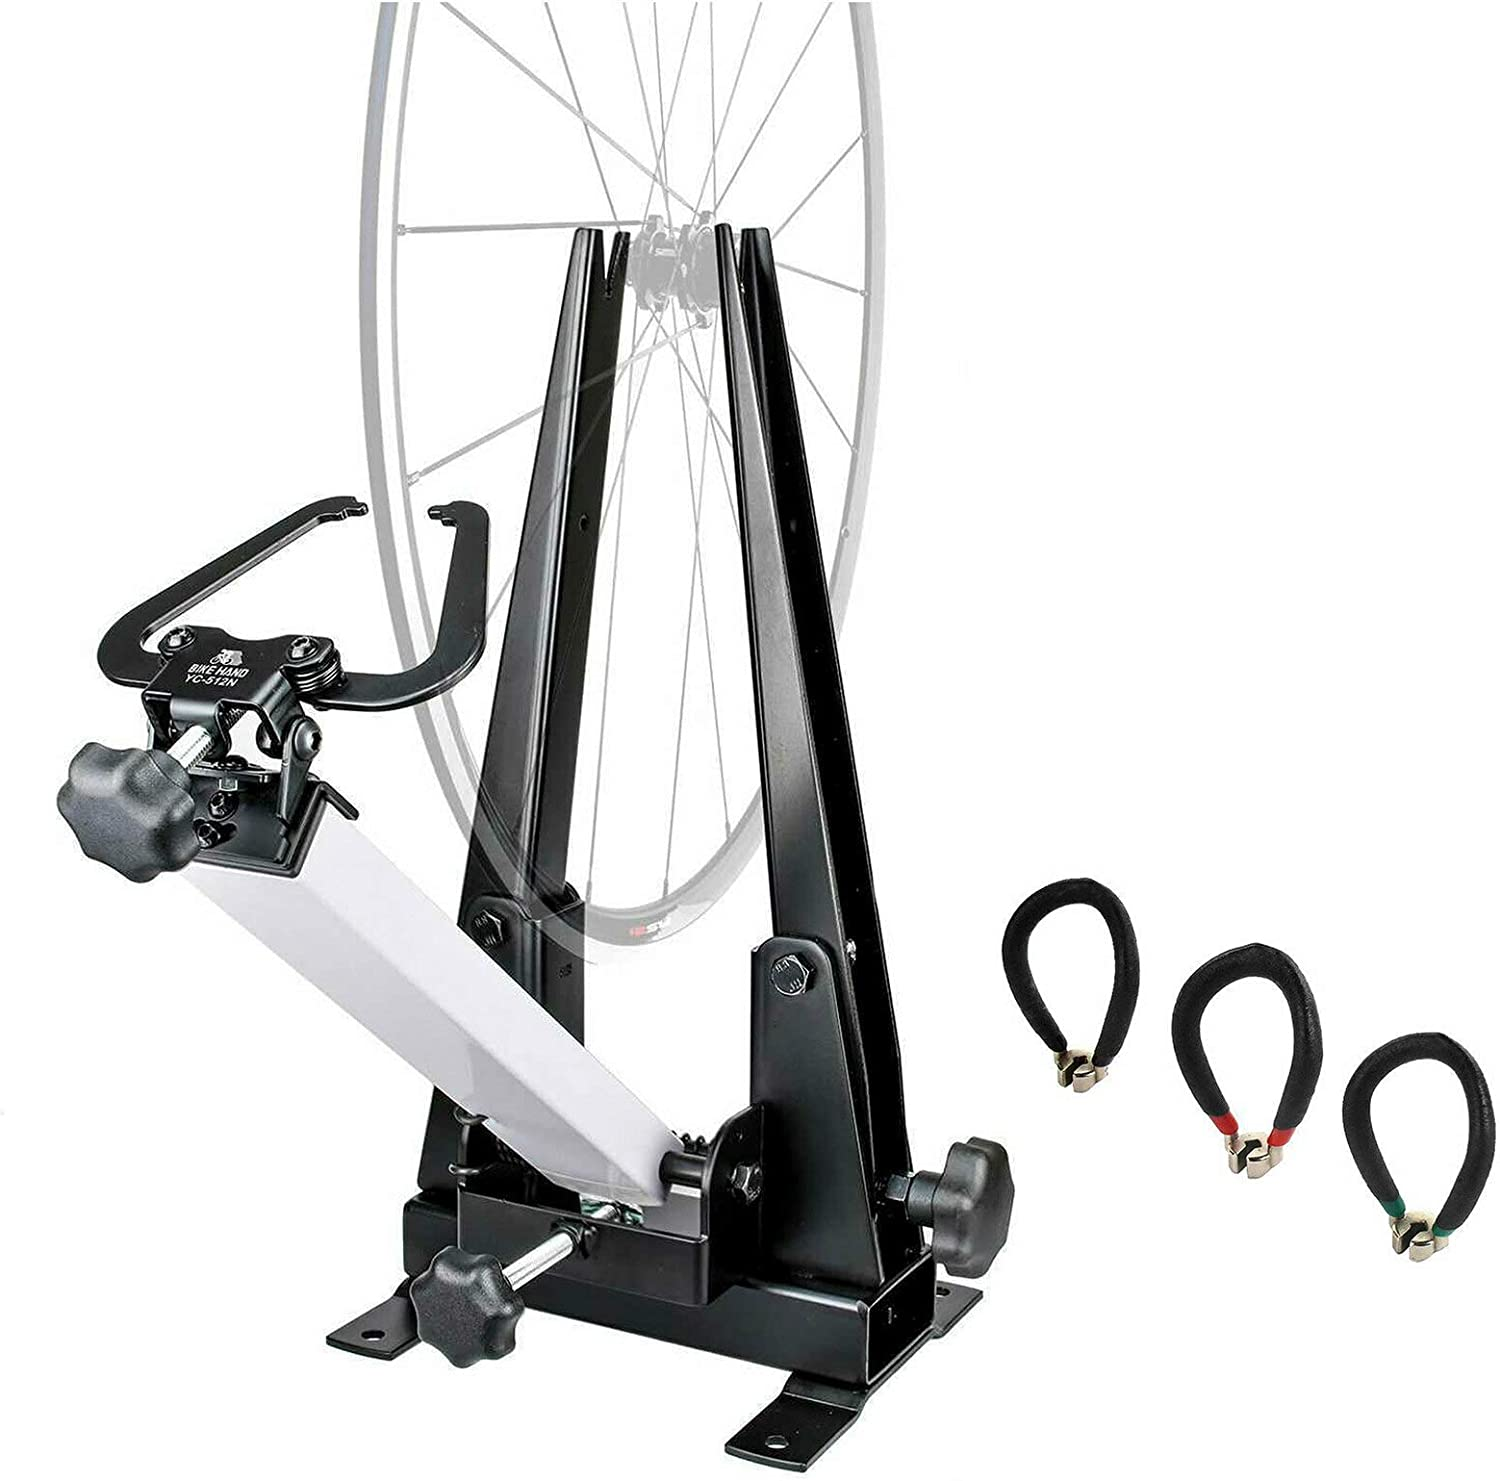 Bikehand Bikehand Bike Wheel Truing Stand Bicycle Wheel ...